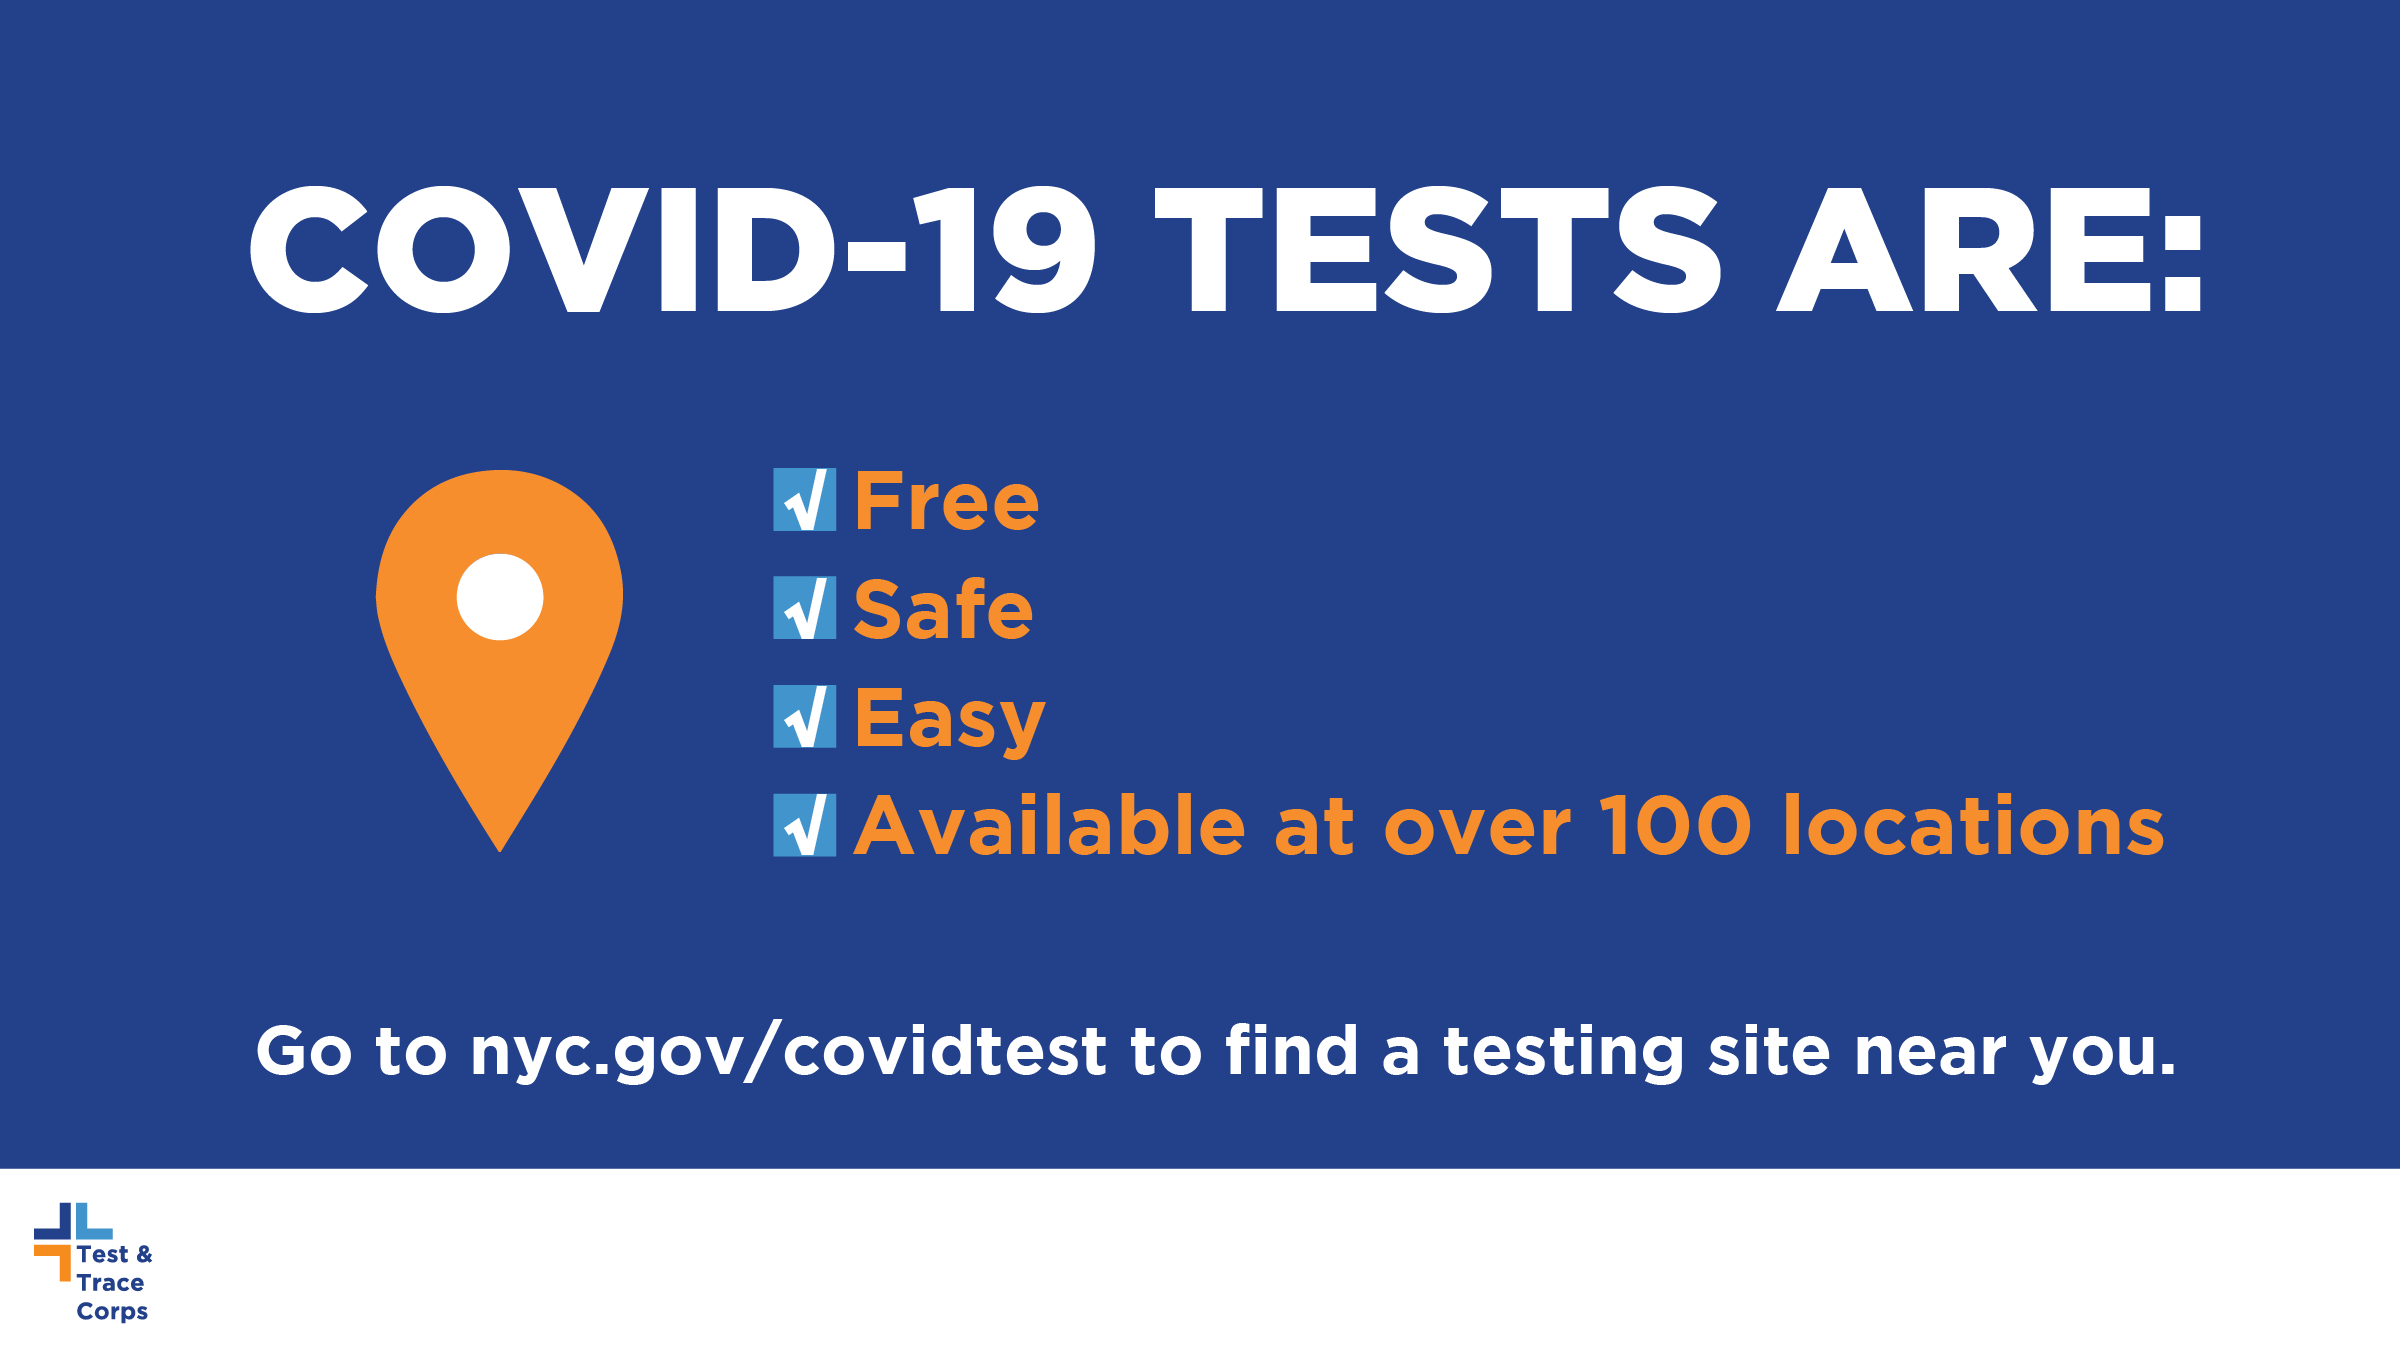 Covid 19 Testing Is Available For Free At A Location Near You Chinese American Planning Council